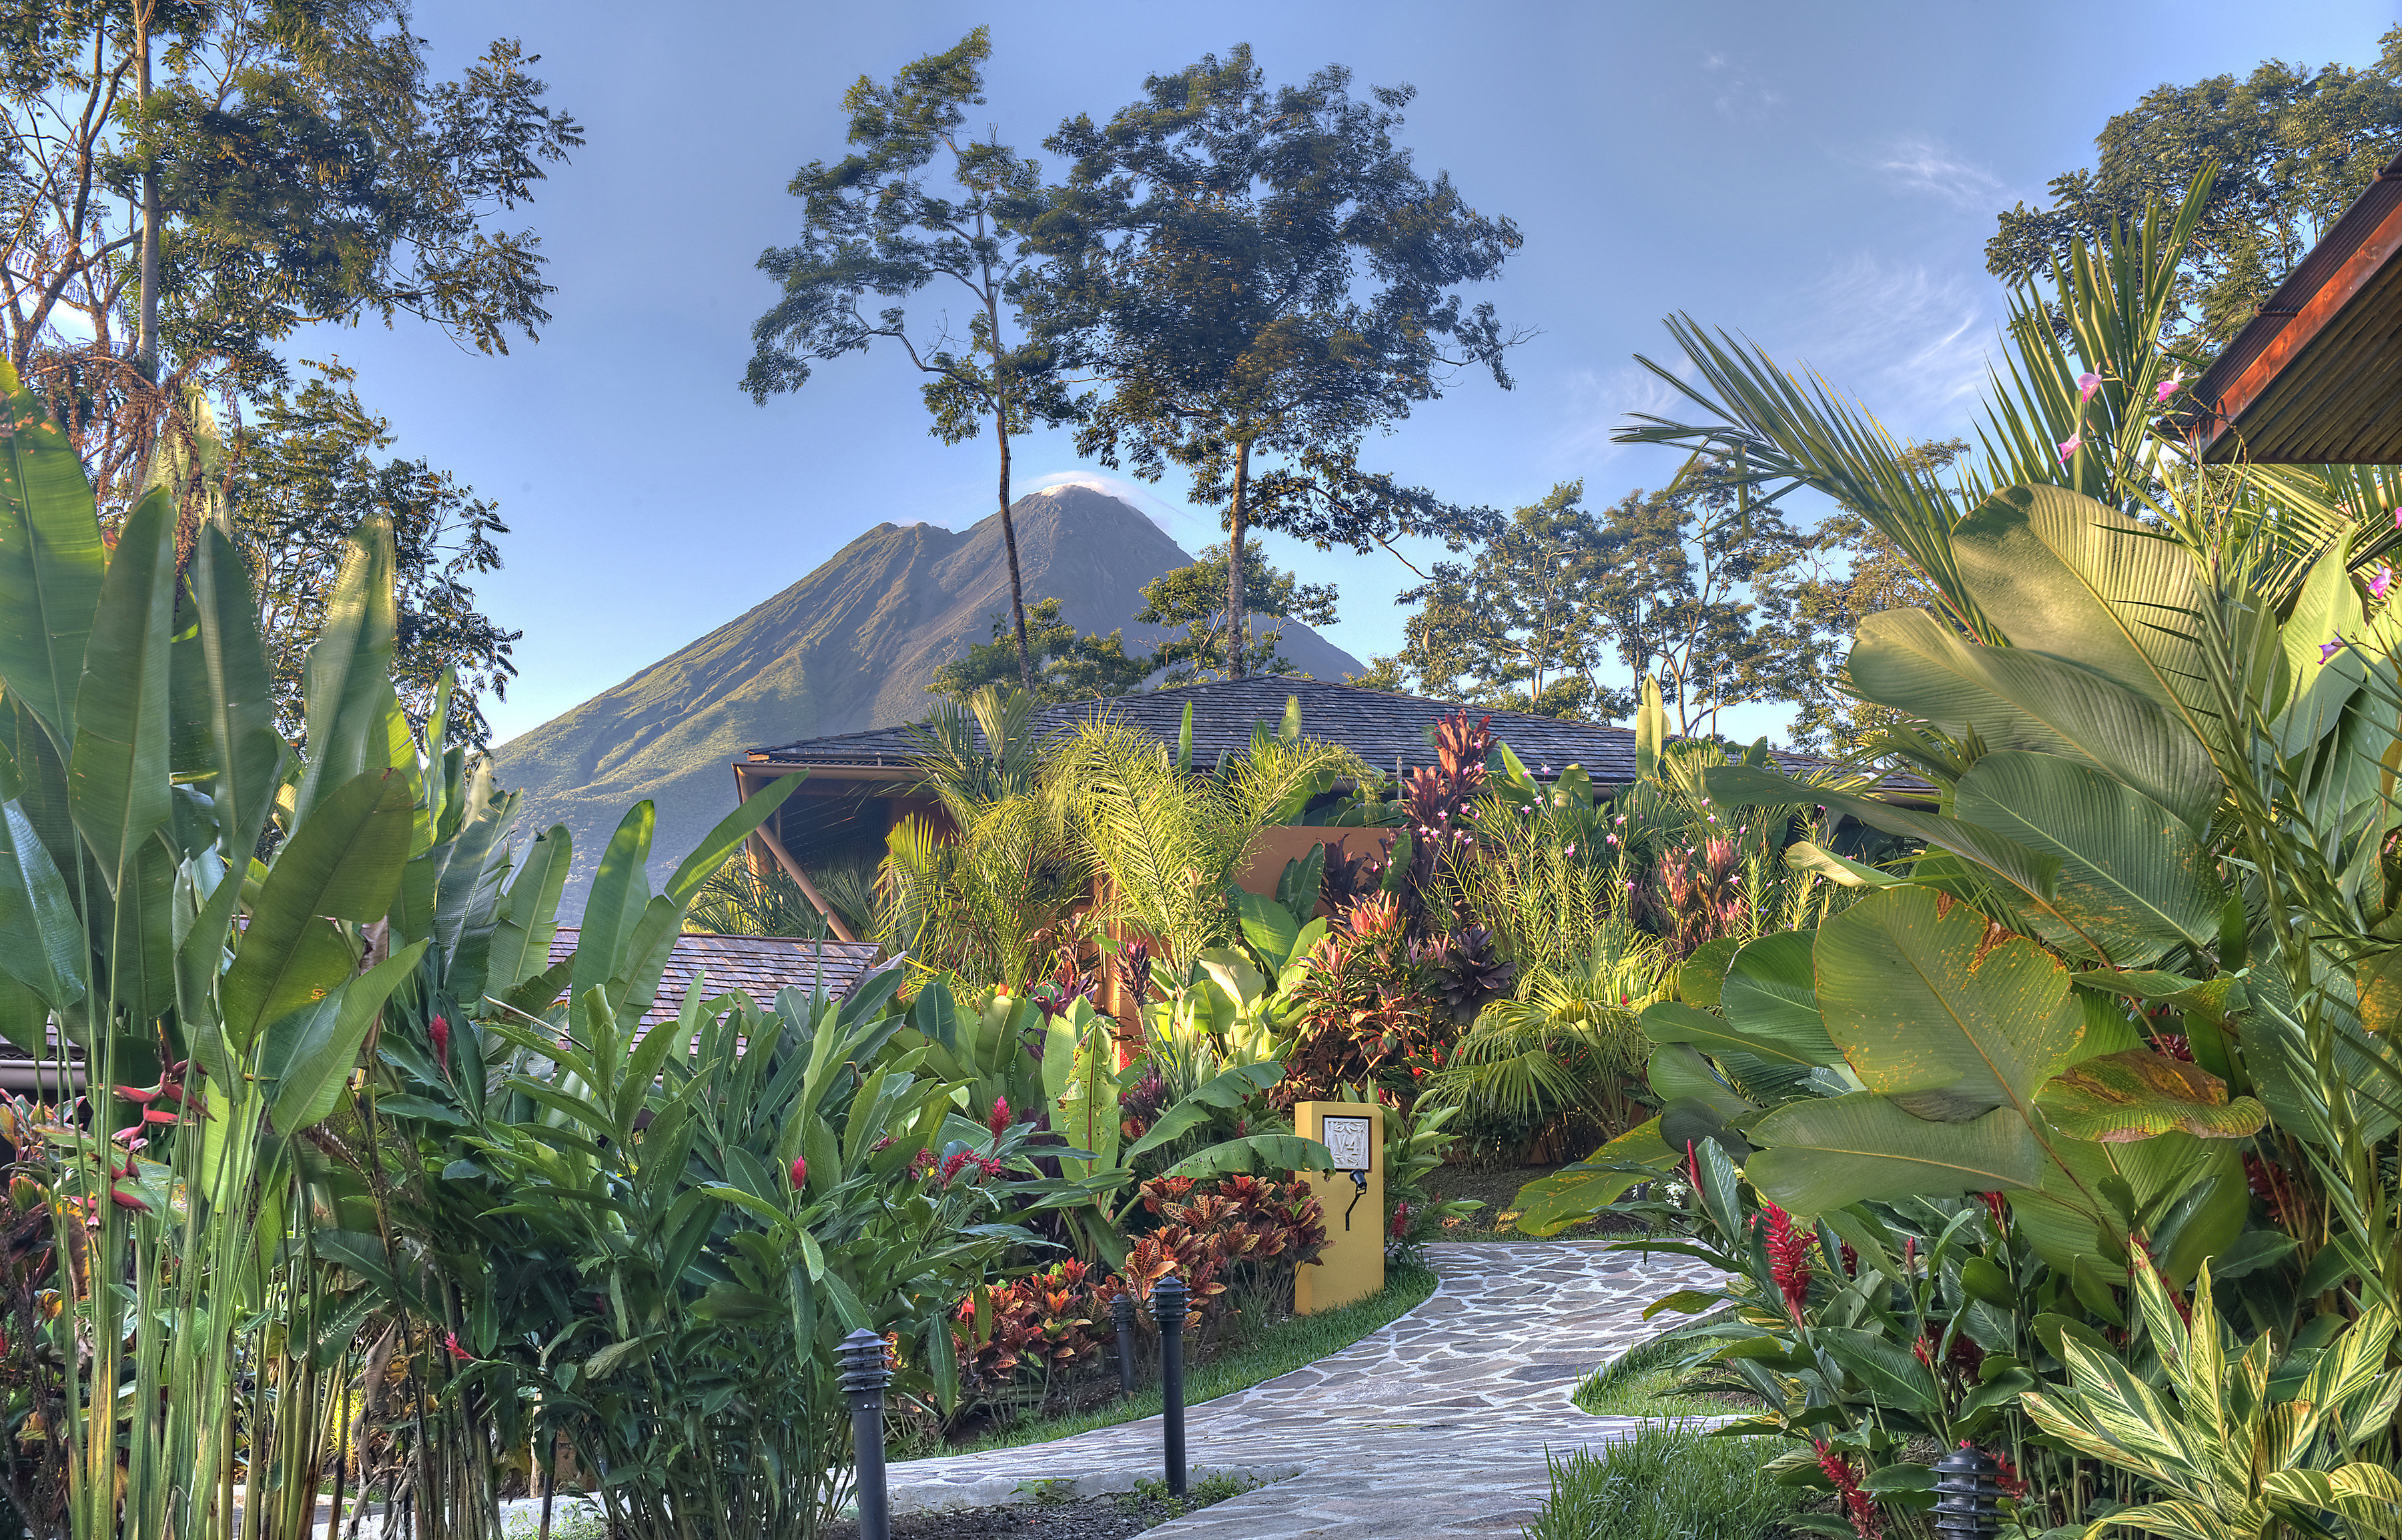 Costa Ricas Arenal Volcano Peeks Out Through The Trees At Nayara Springs